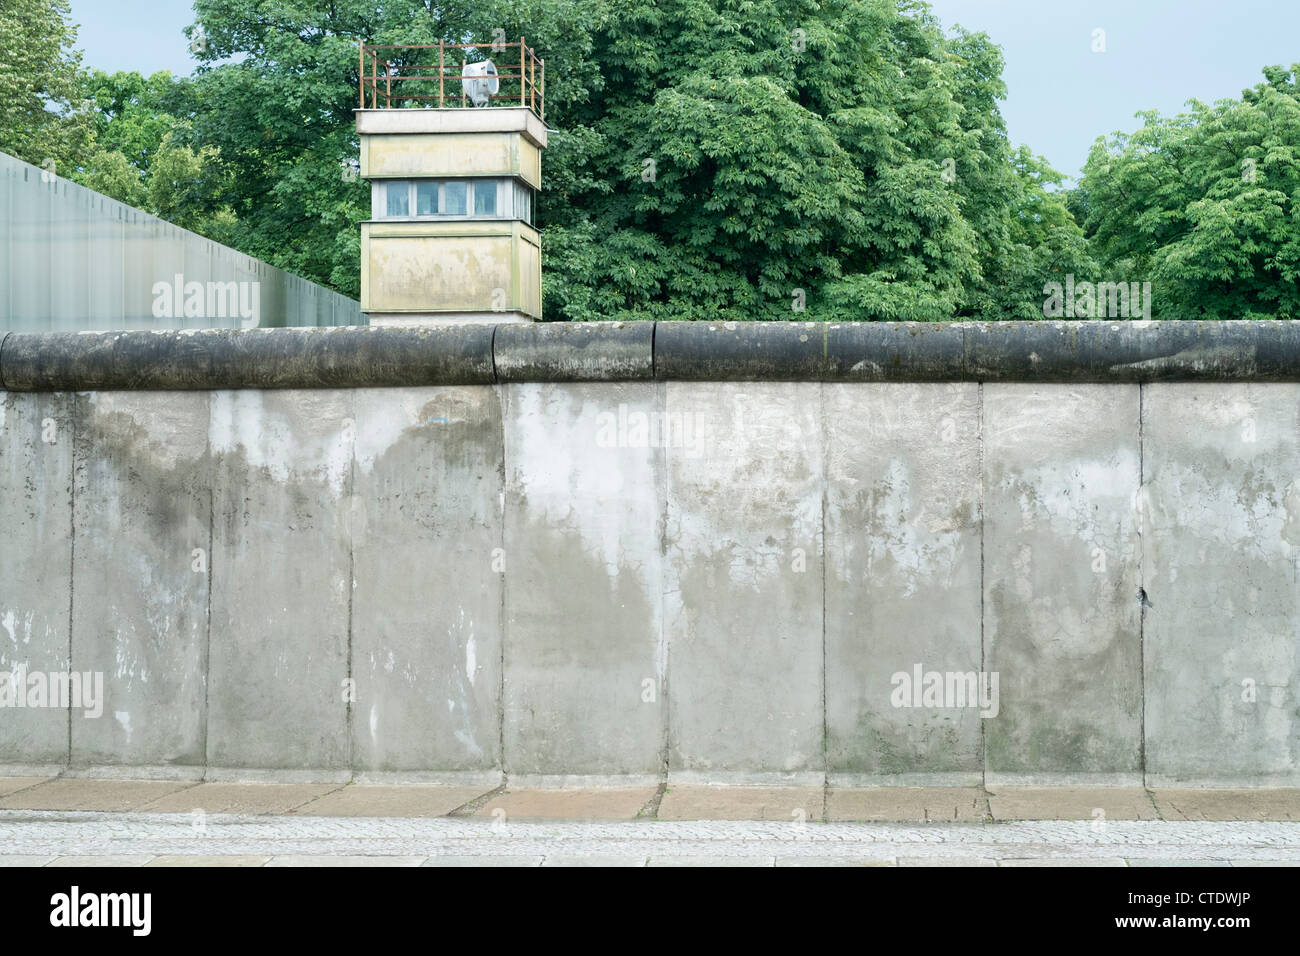 Section of original Berlin Wall at Bernauer Strasse in Berlin Germany - Stock Image